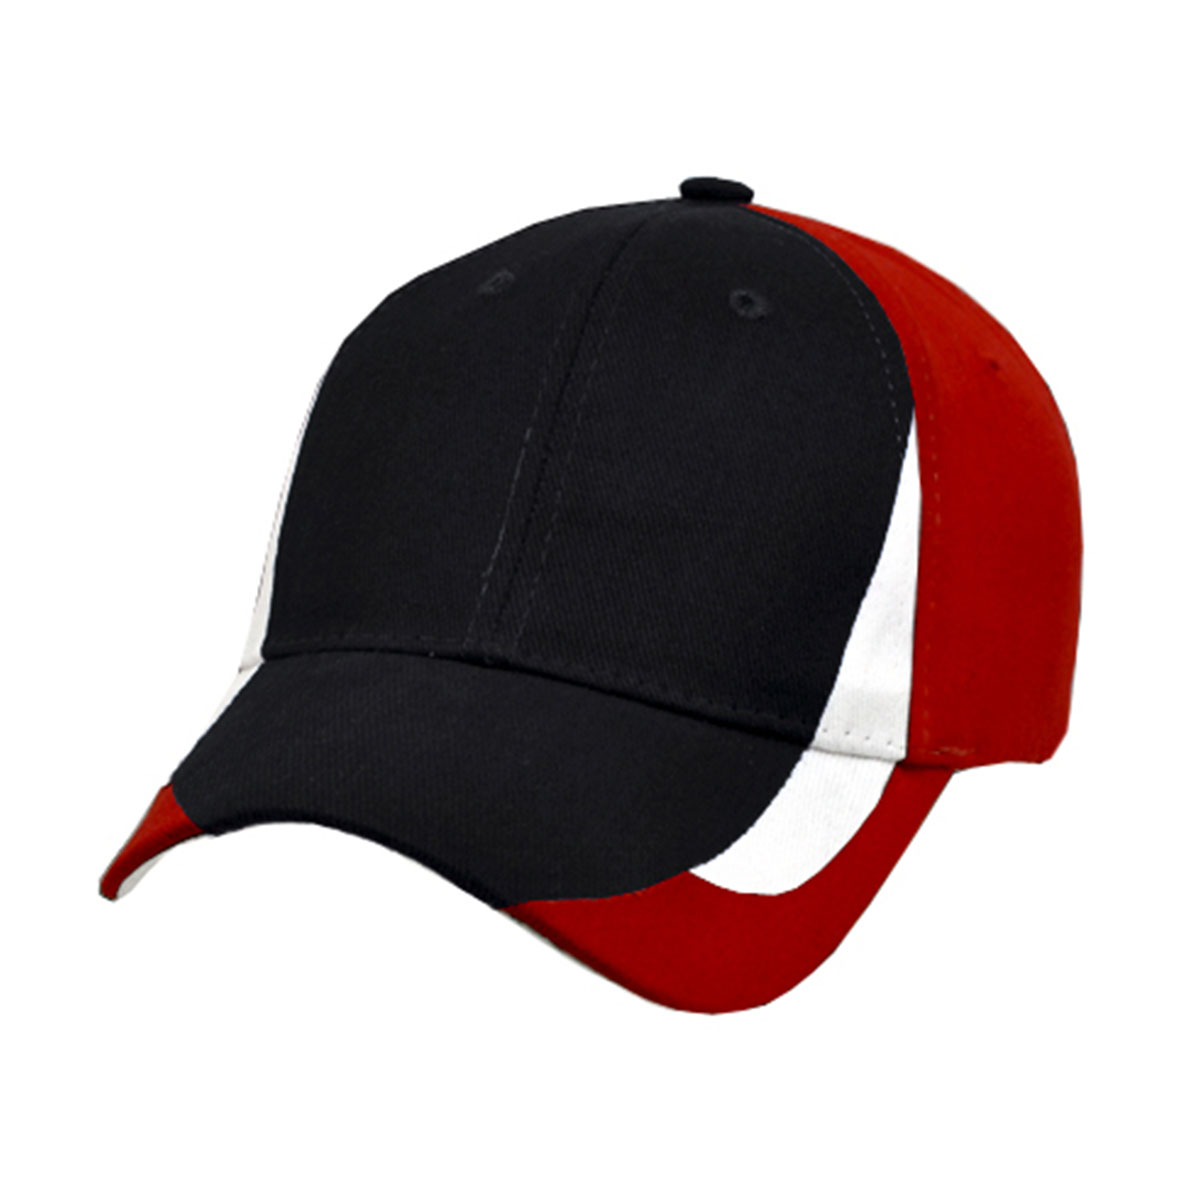 Tribeca Cap-Black / White / Red